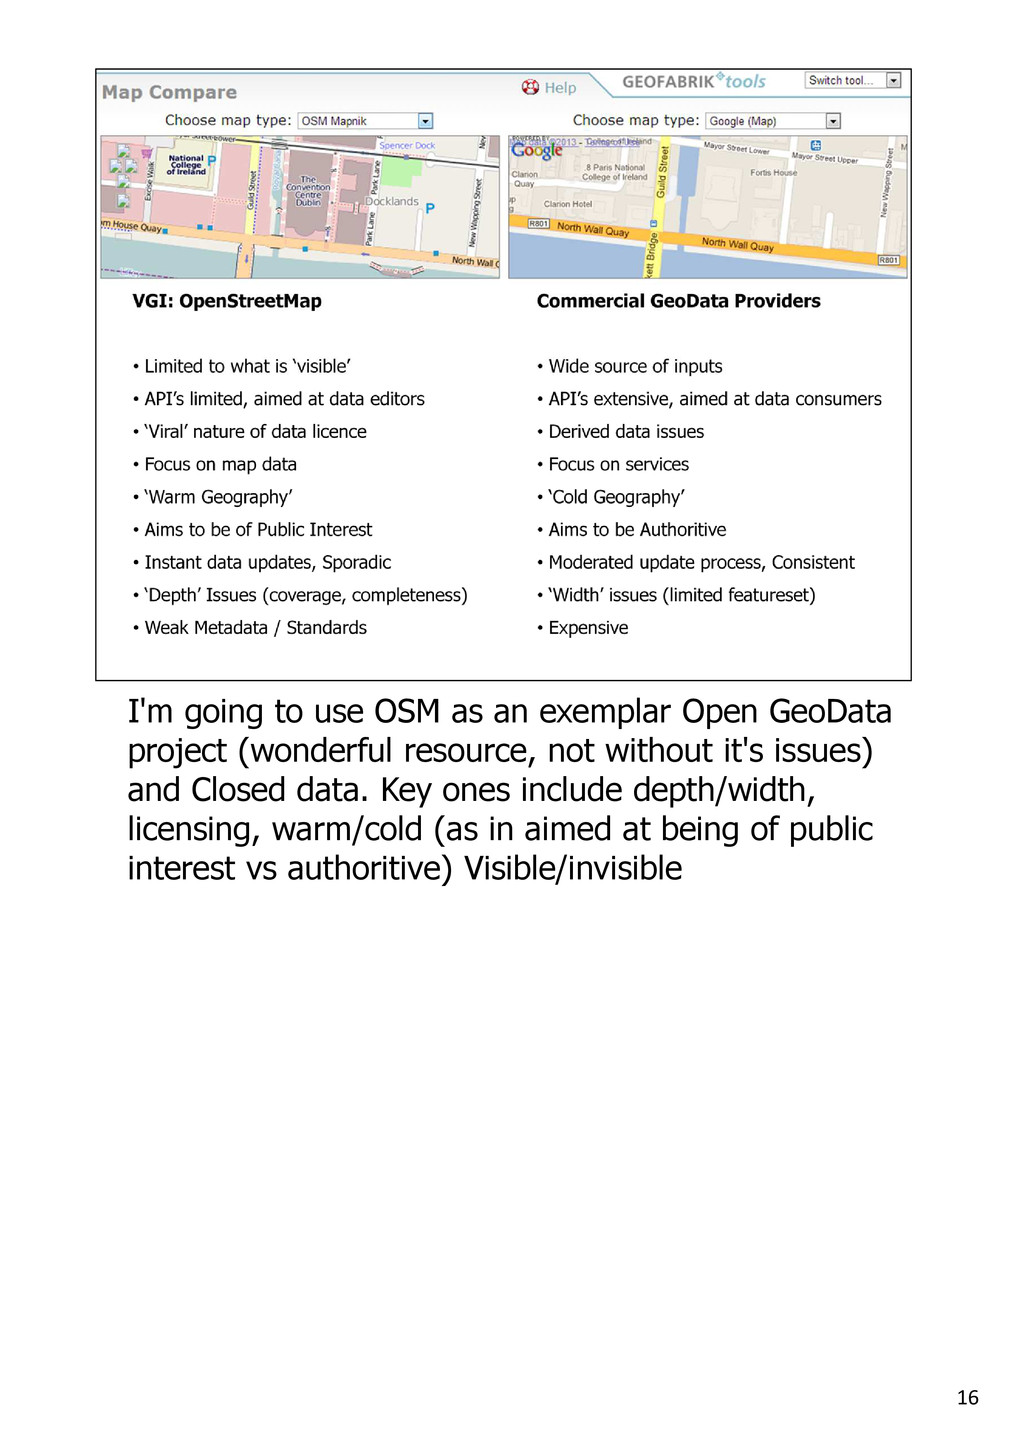 16 I'm going to use OSM as an exemplar Open Geo...